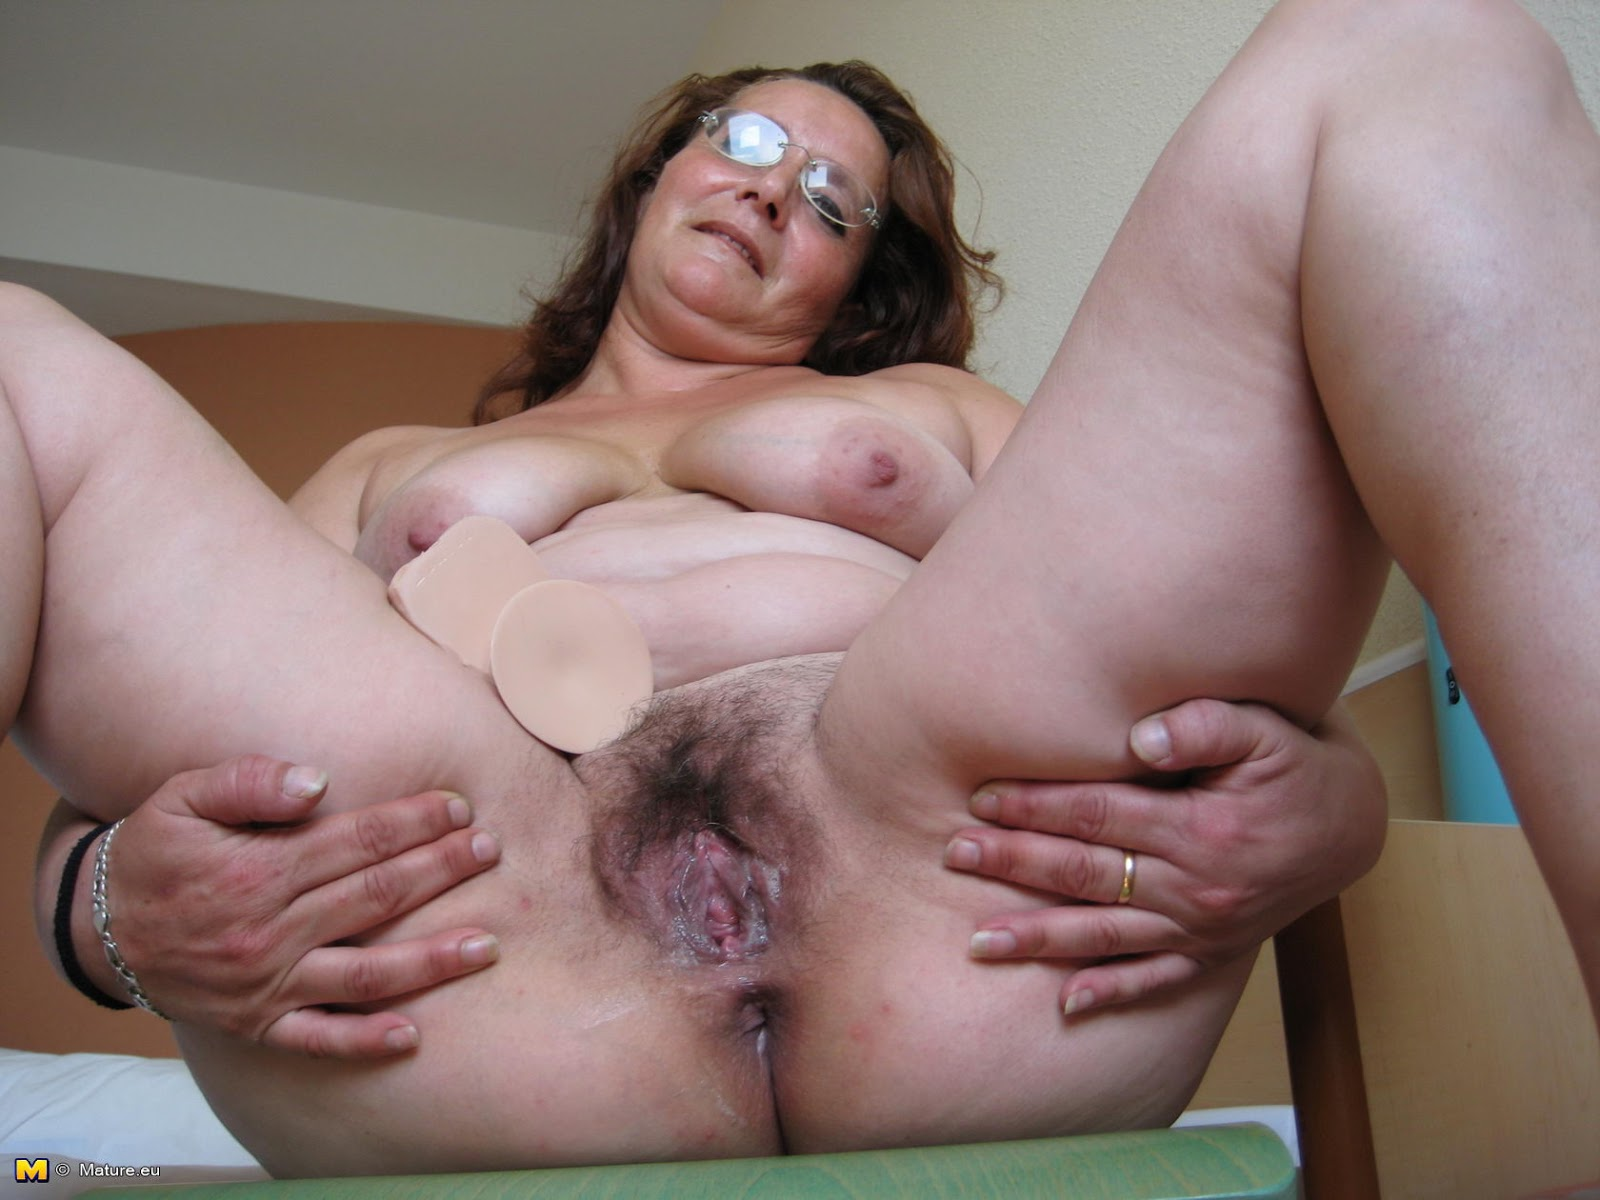 archive of old women: Solo Mature Latina (request)